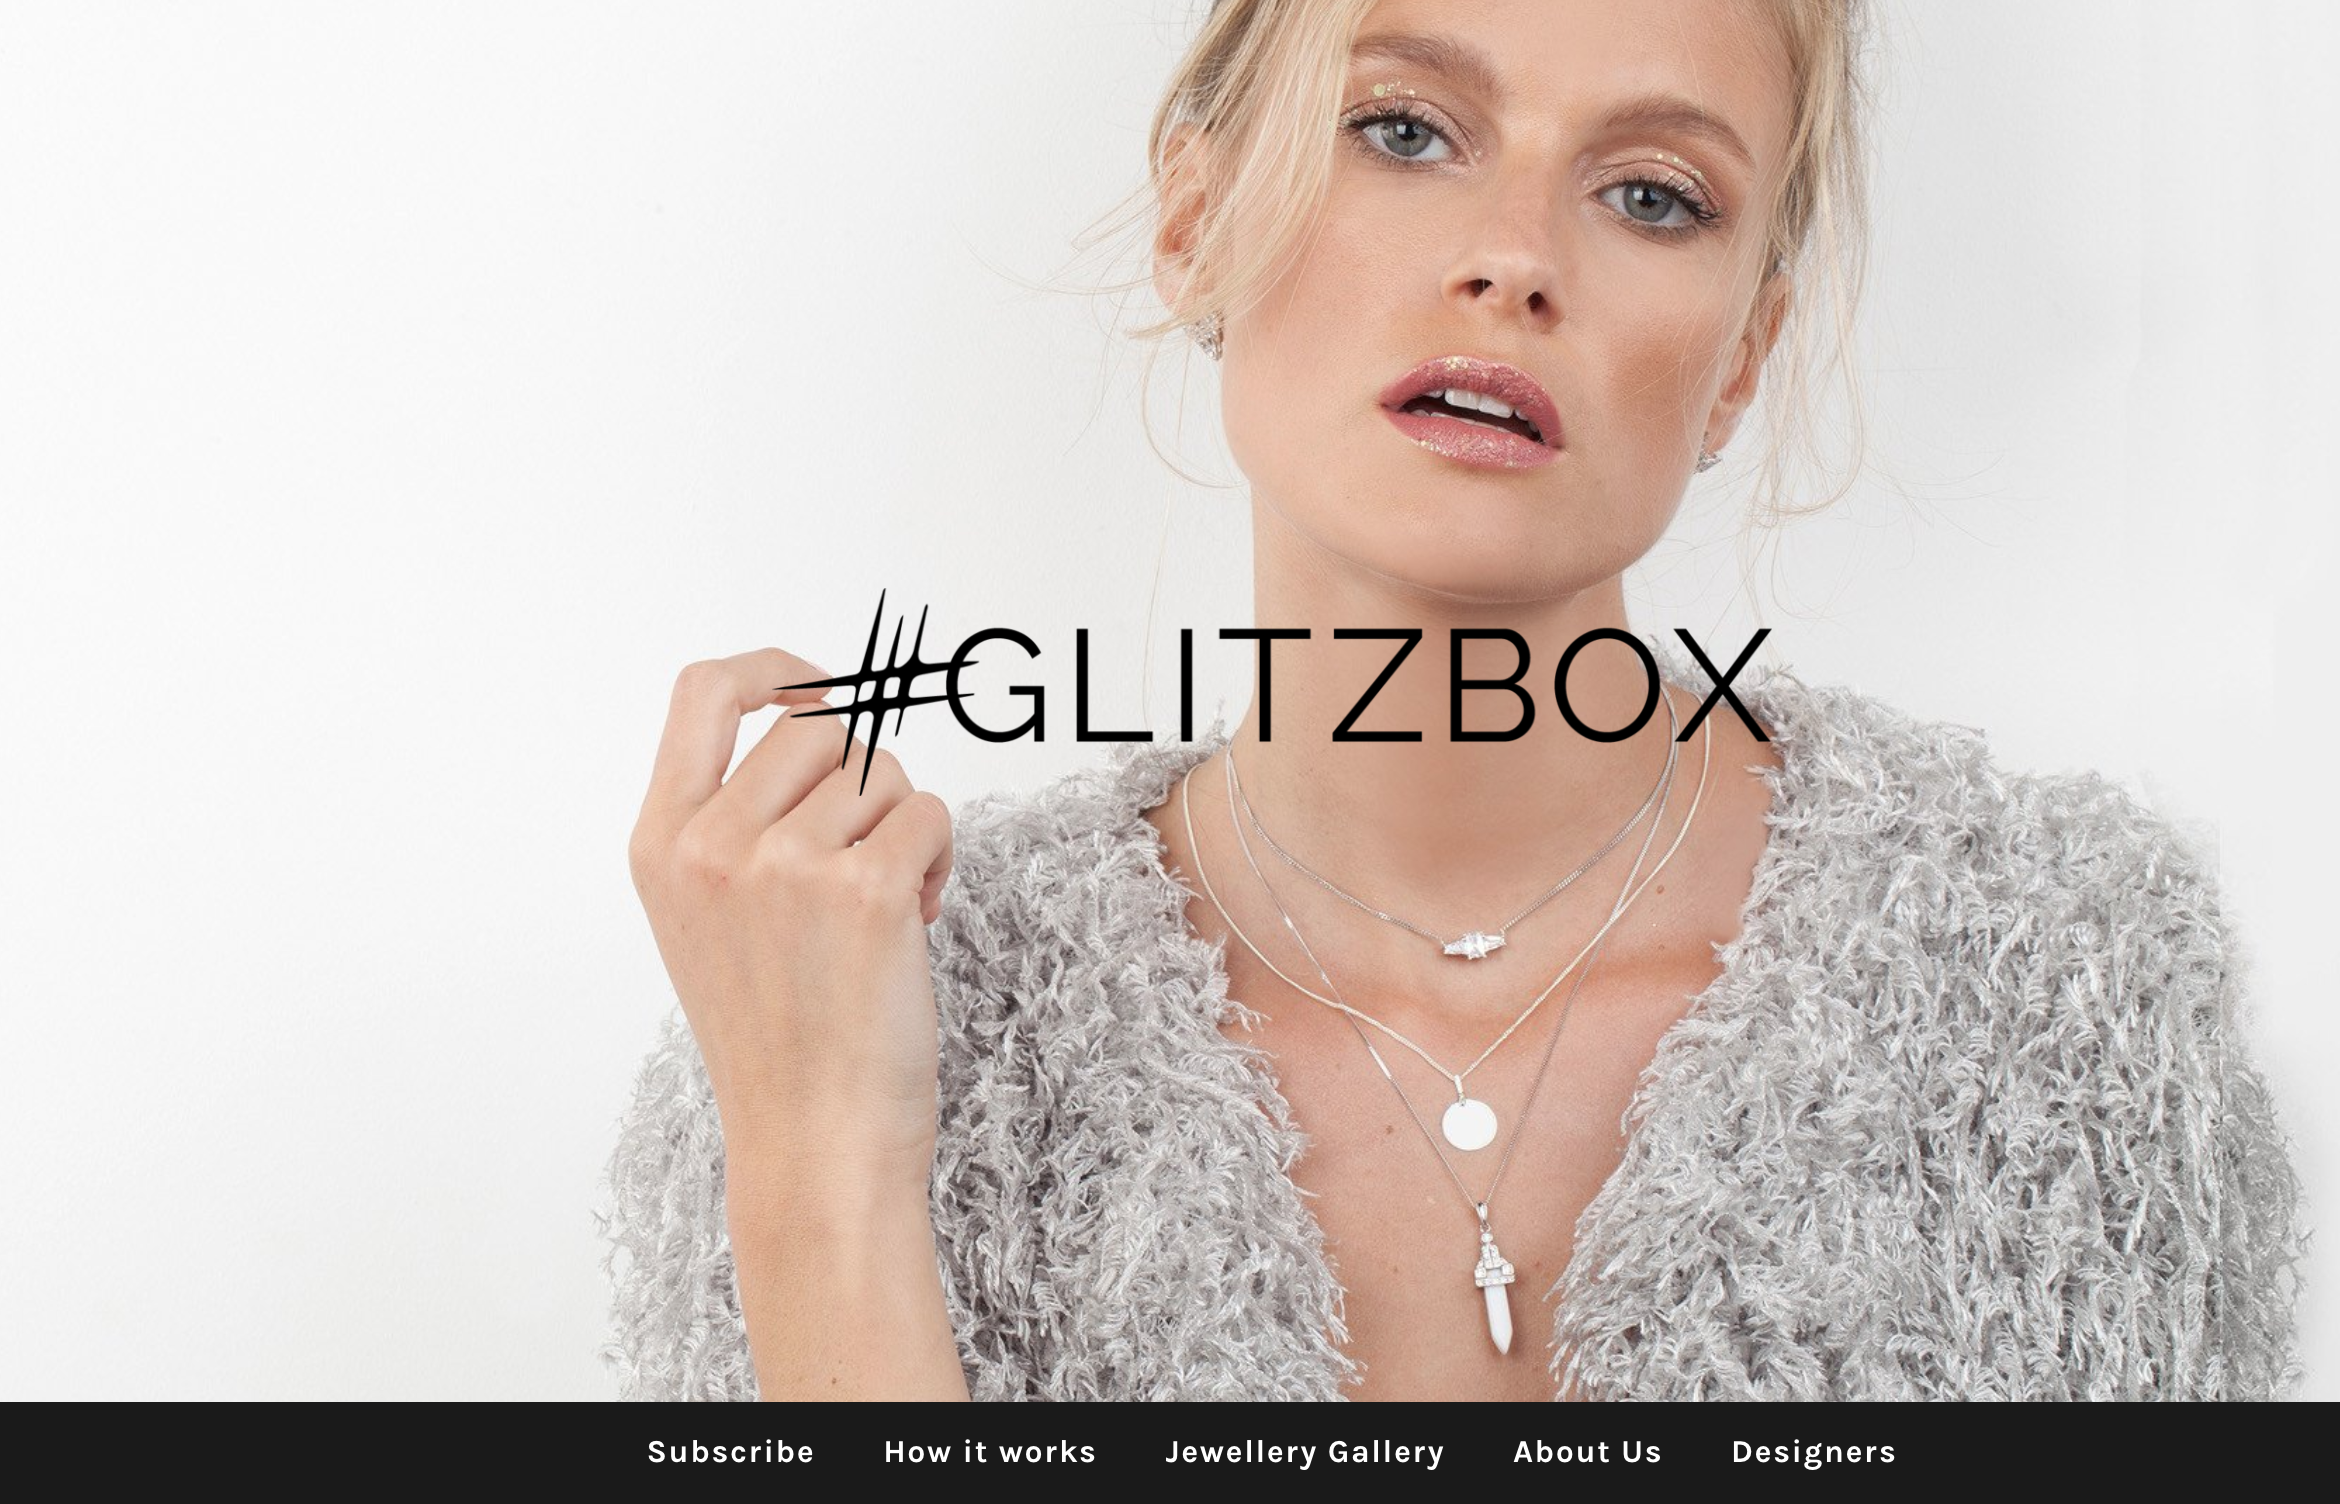 www.glitzbox.co.uk